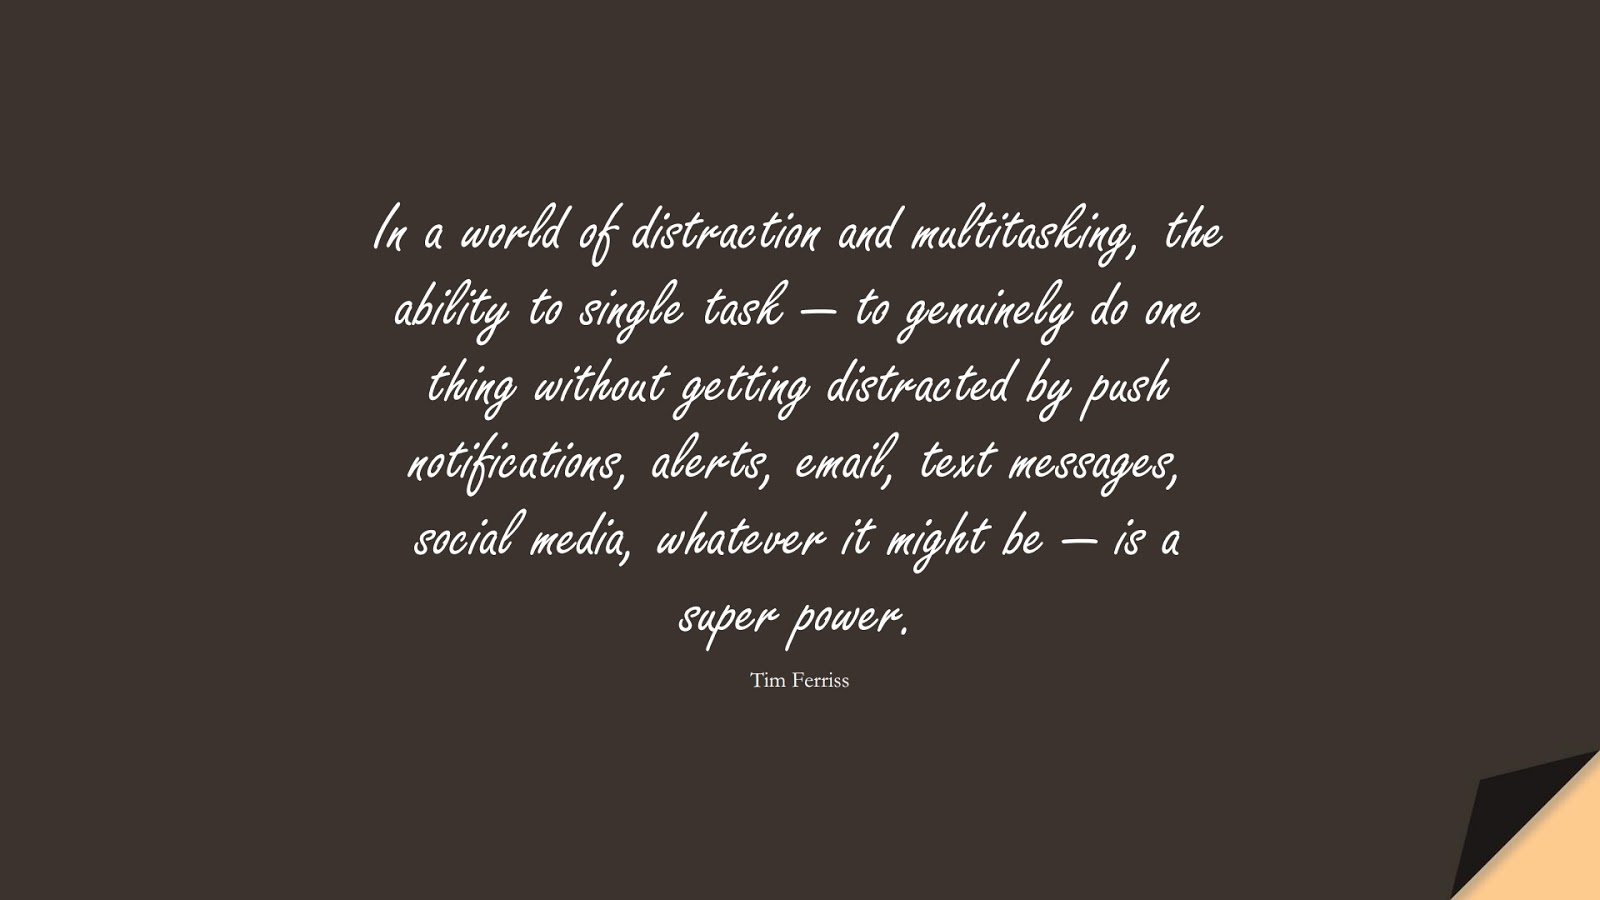 In a world of distraction and multitasking, the ability to single task — to genuinely do one thing without getting distracted by push notifications, alerts, email, text messages, social media, whatever it might be — is a super power. (Tim Ferriss);  #TimFerrissQuotes